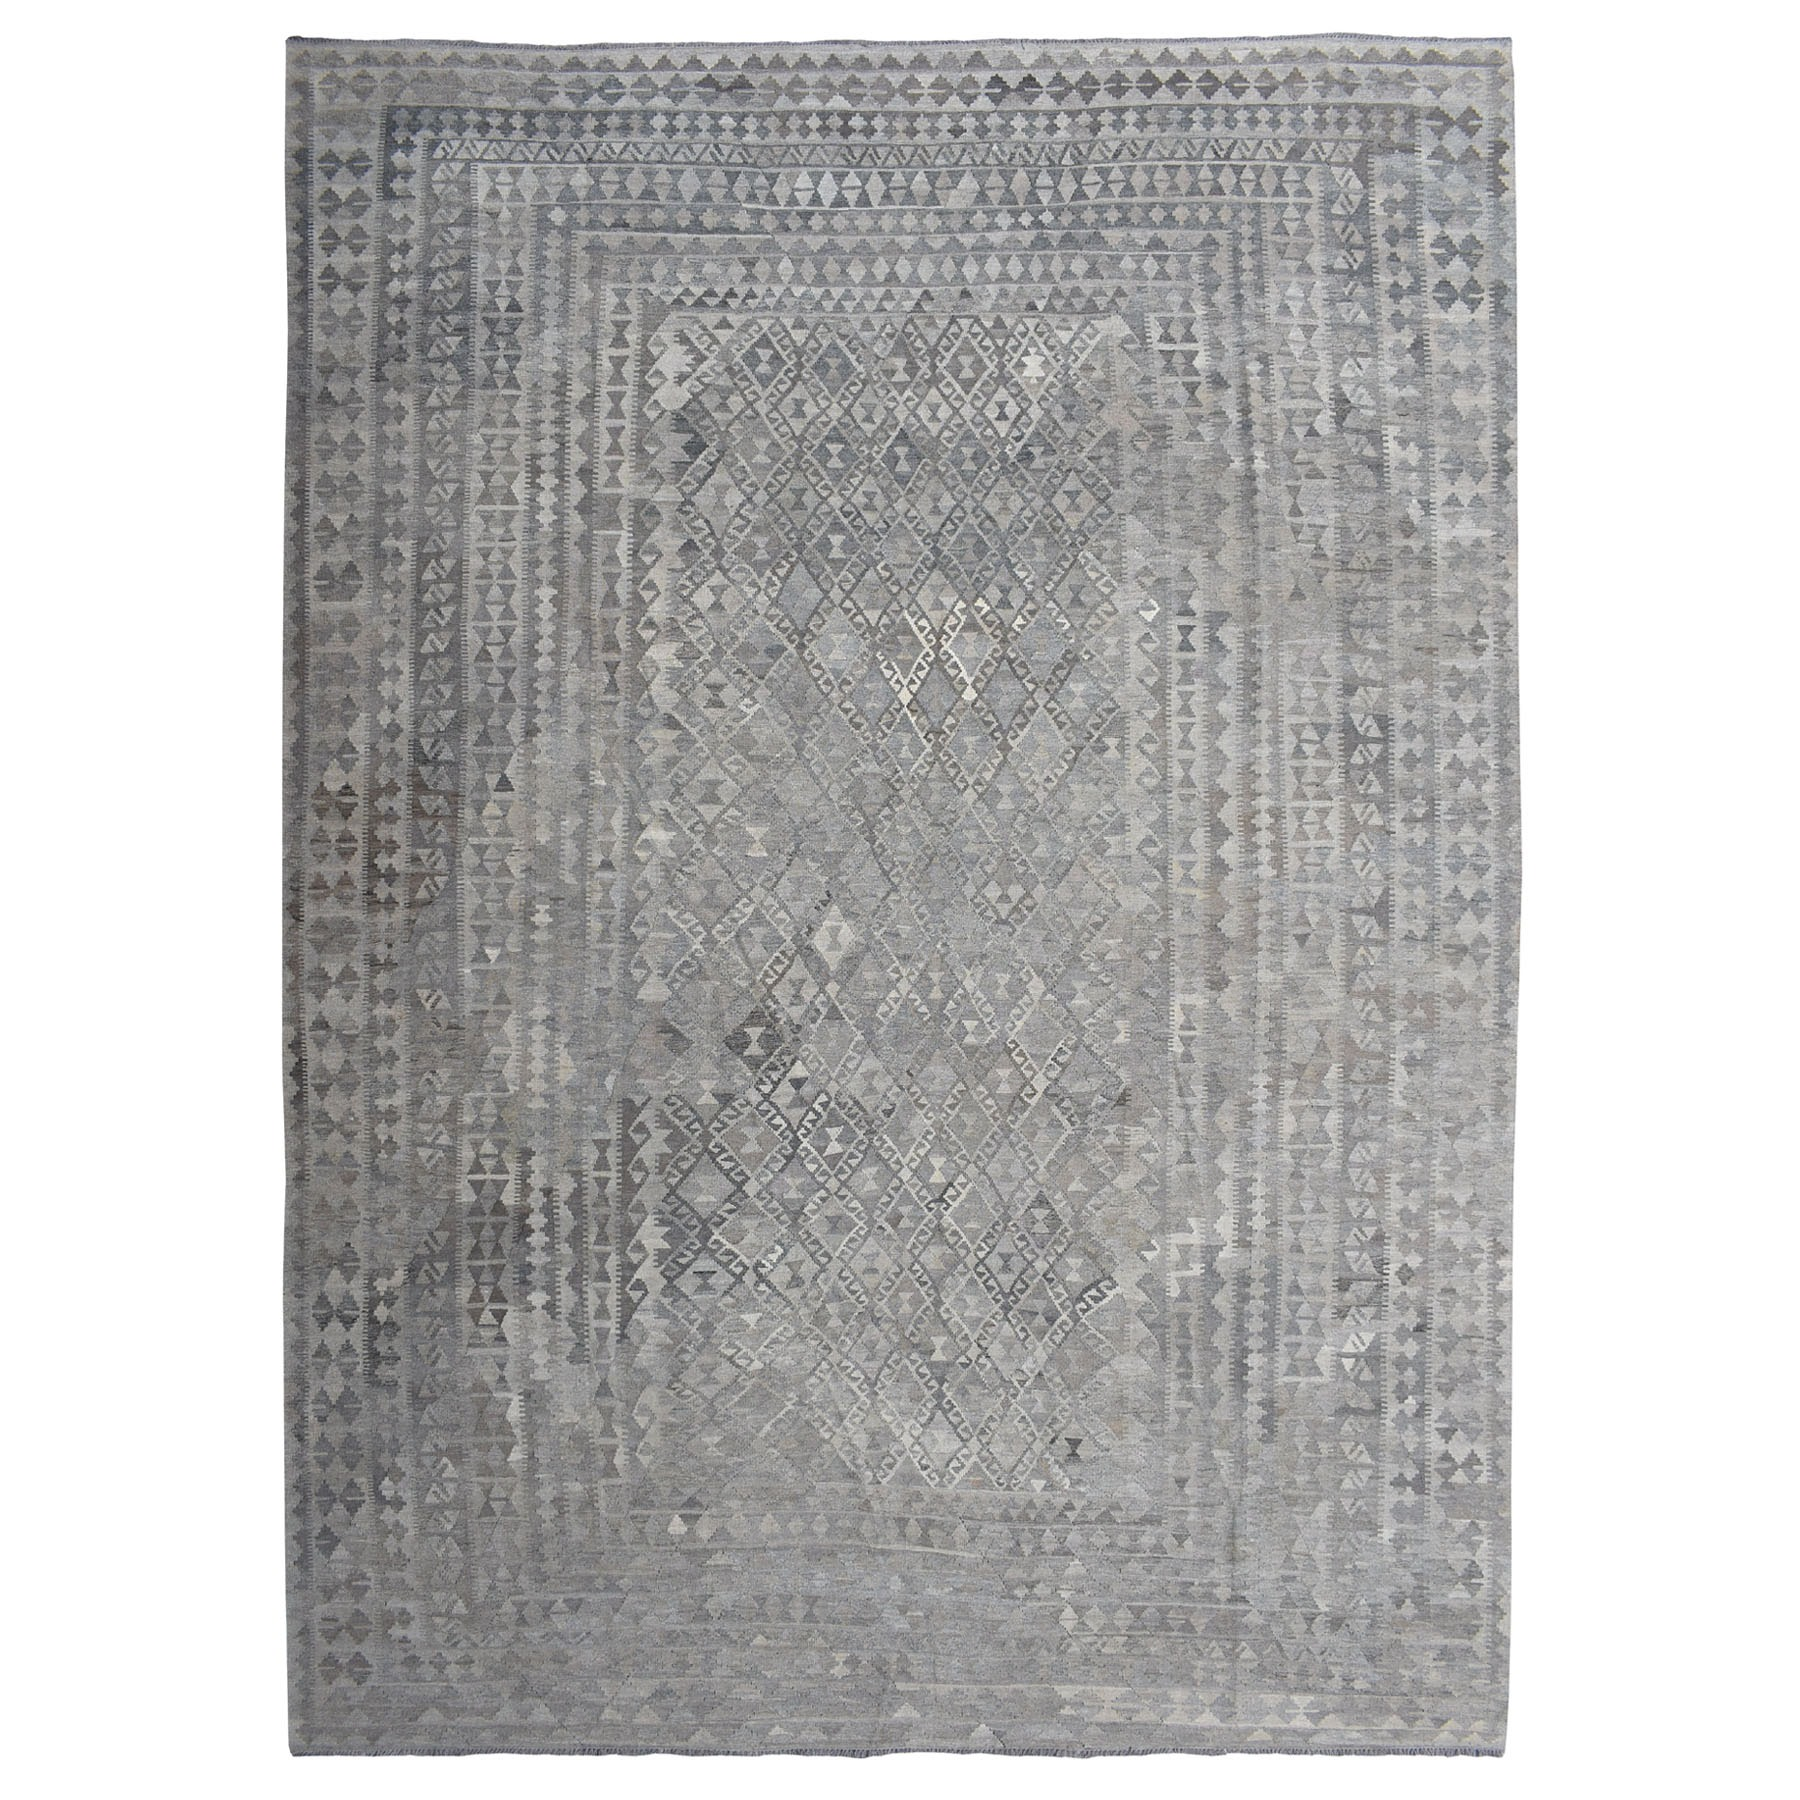 "12'x16'4"" Oversized Undyed Natural Wool Afghan Kilim Reversible Hand Woven Rug"